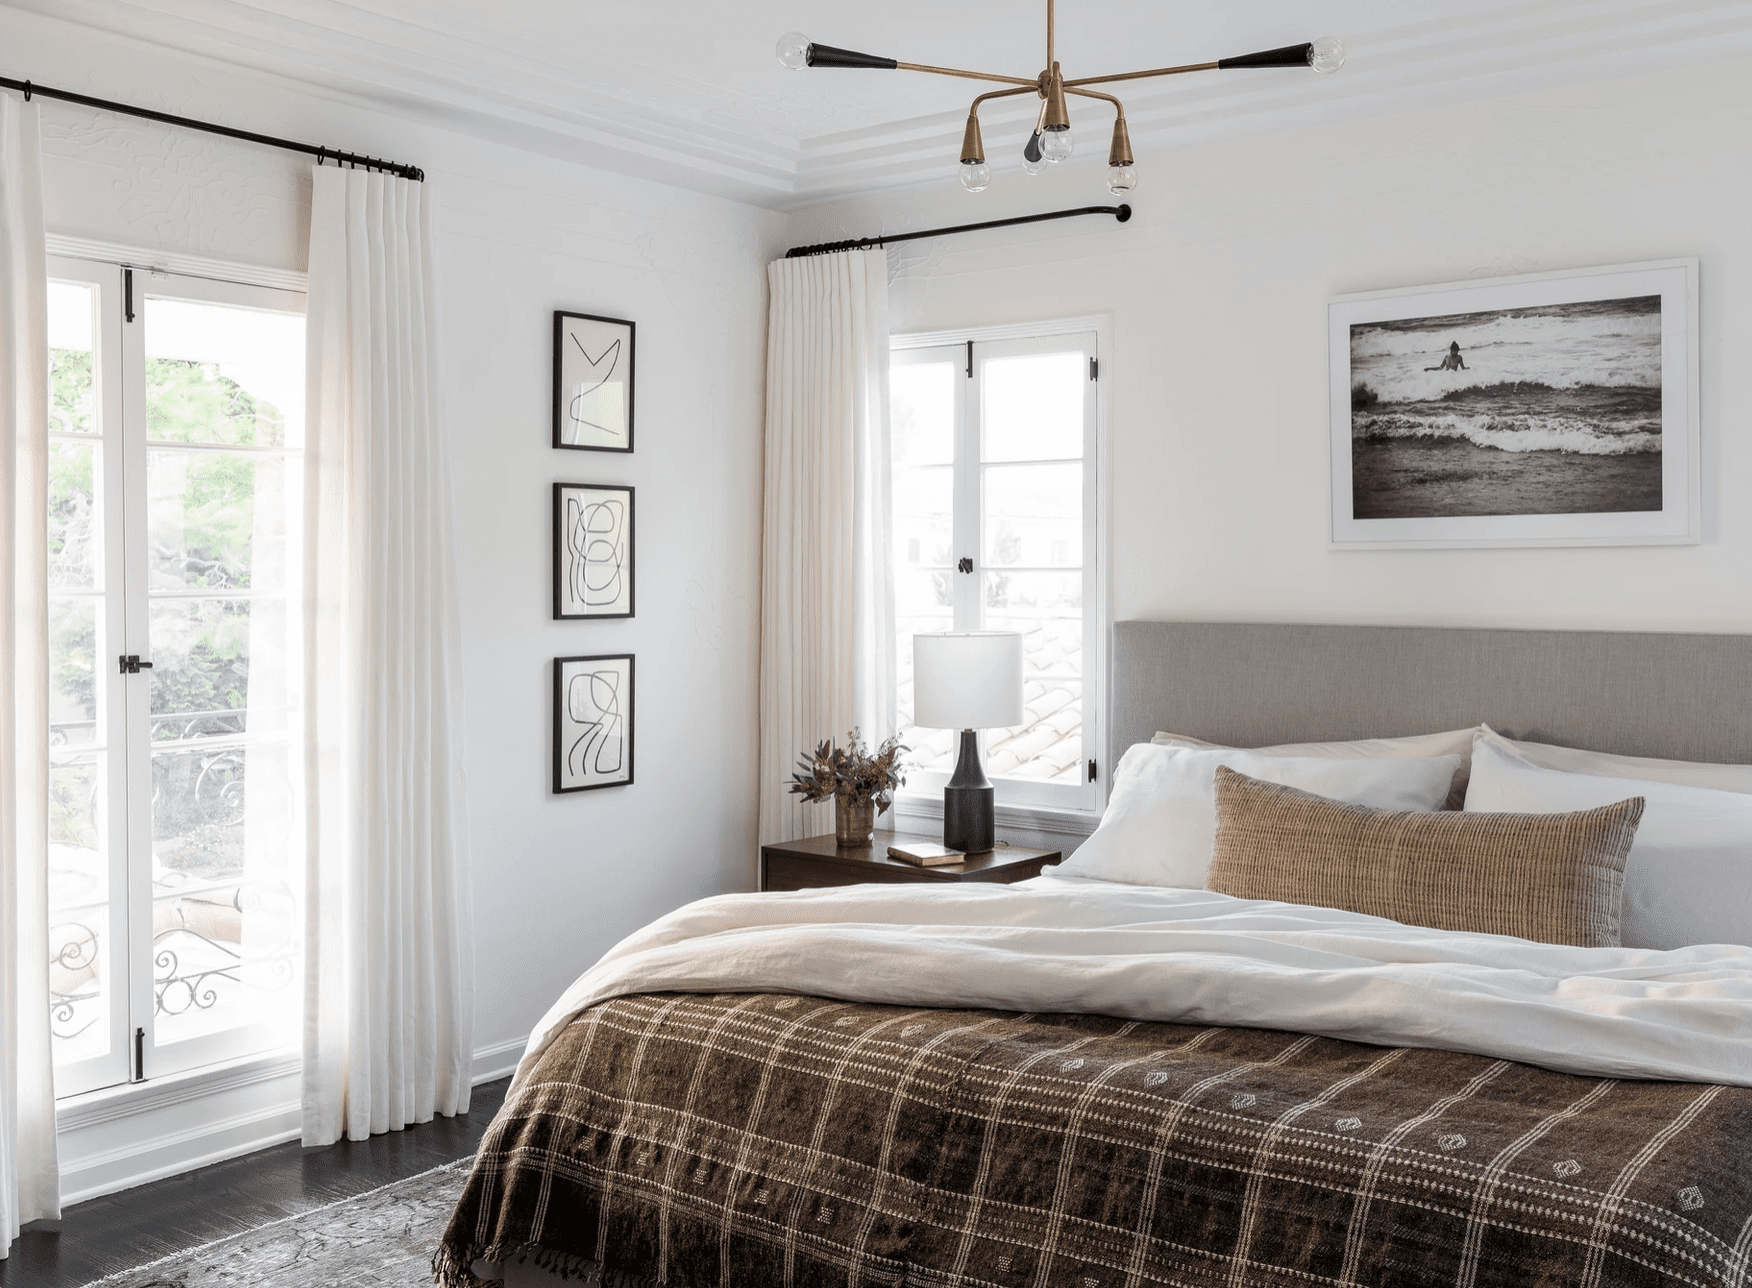 A bedroom with a geometric chandelier and a more classic table lamp